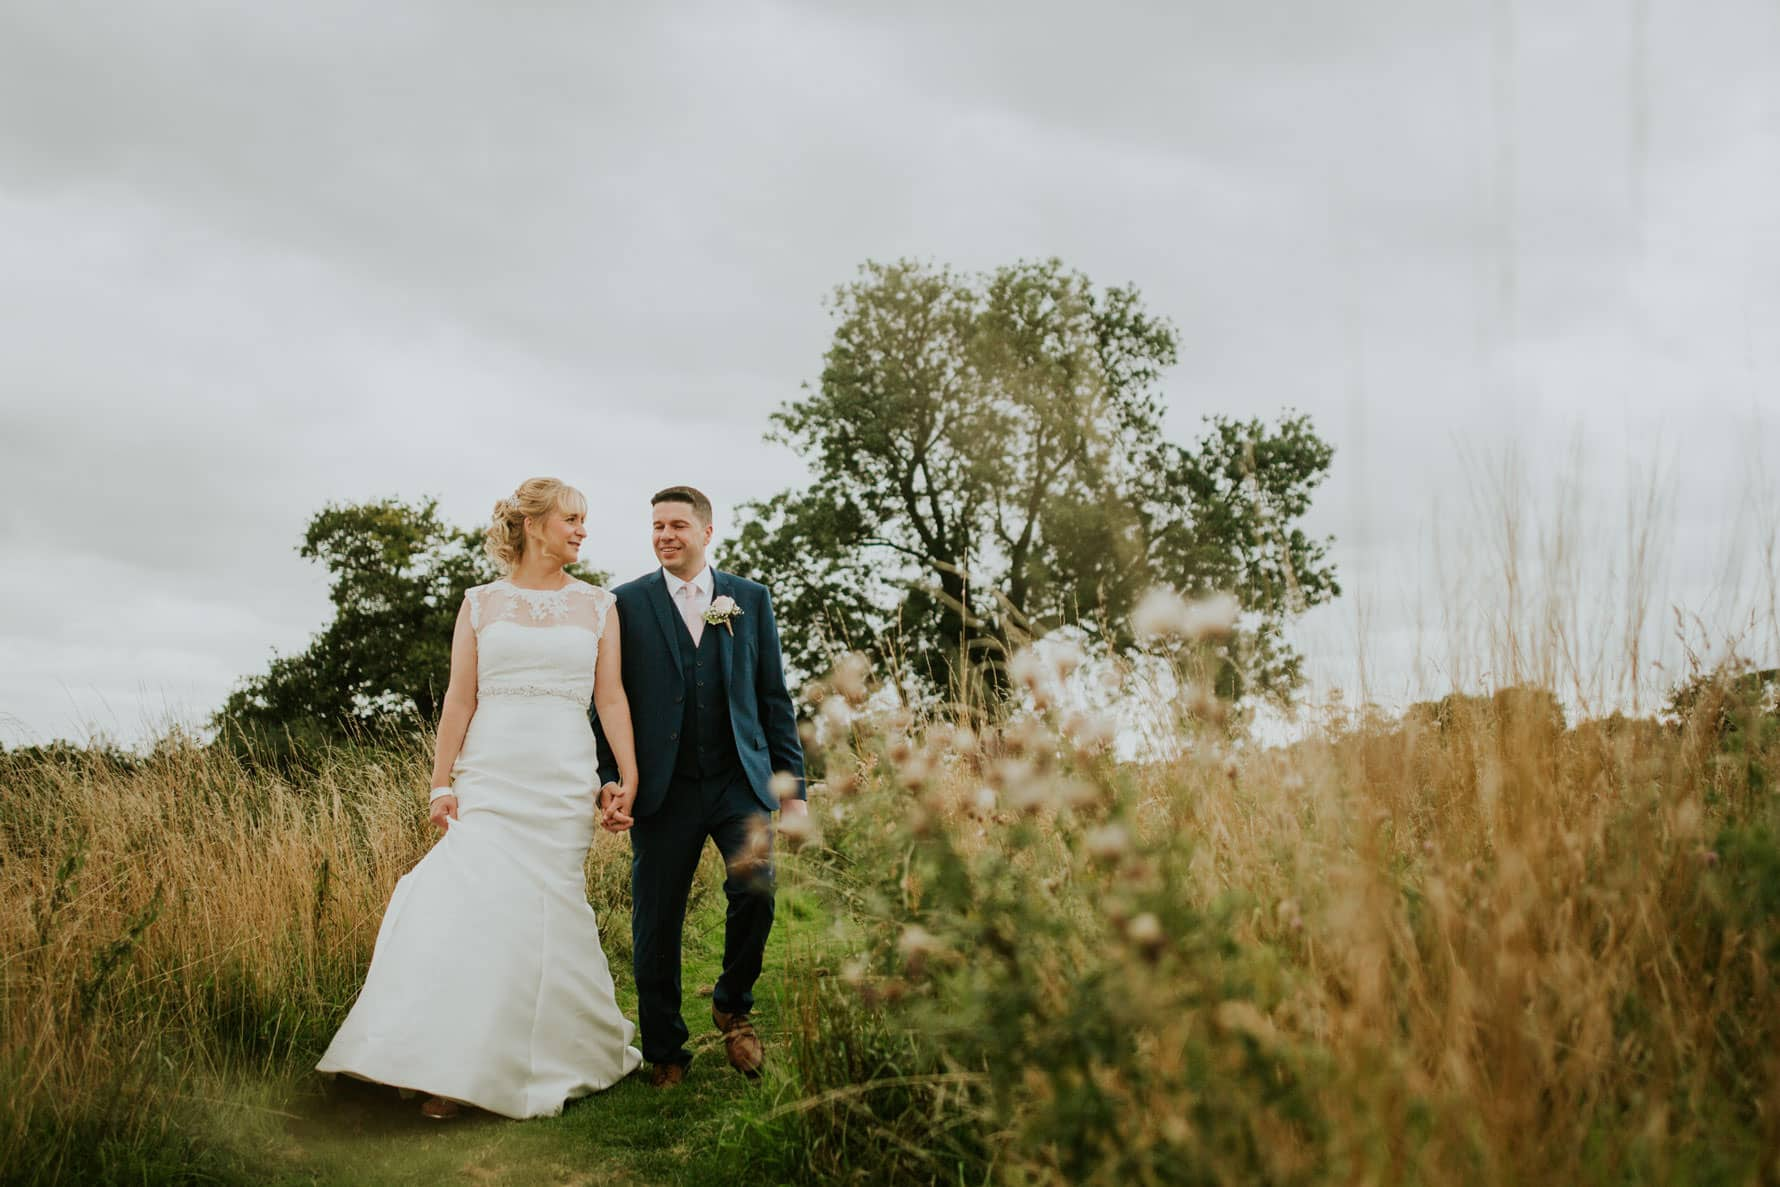 Barnsdale Lodge wedding photographer - bride and groom walking through a wild garden